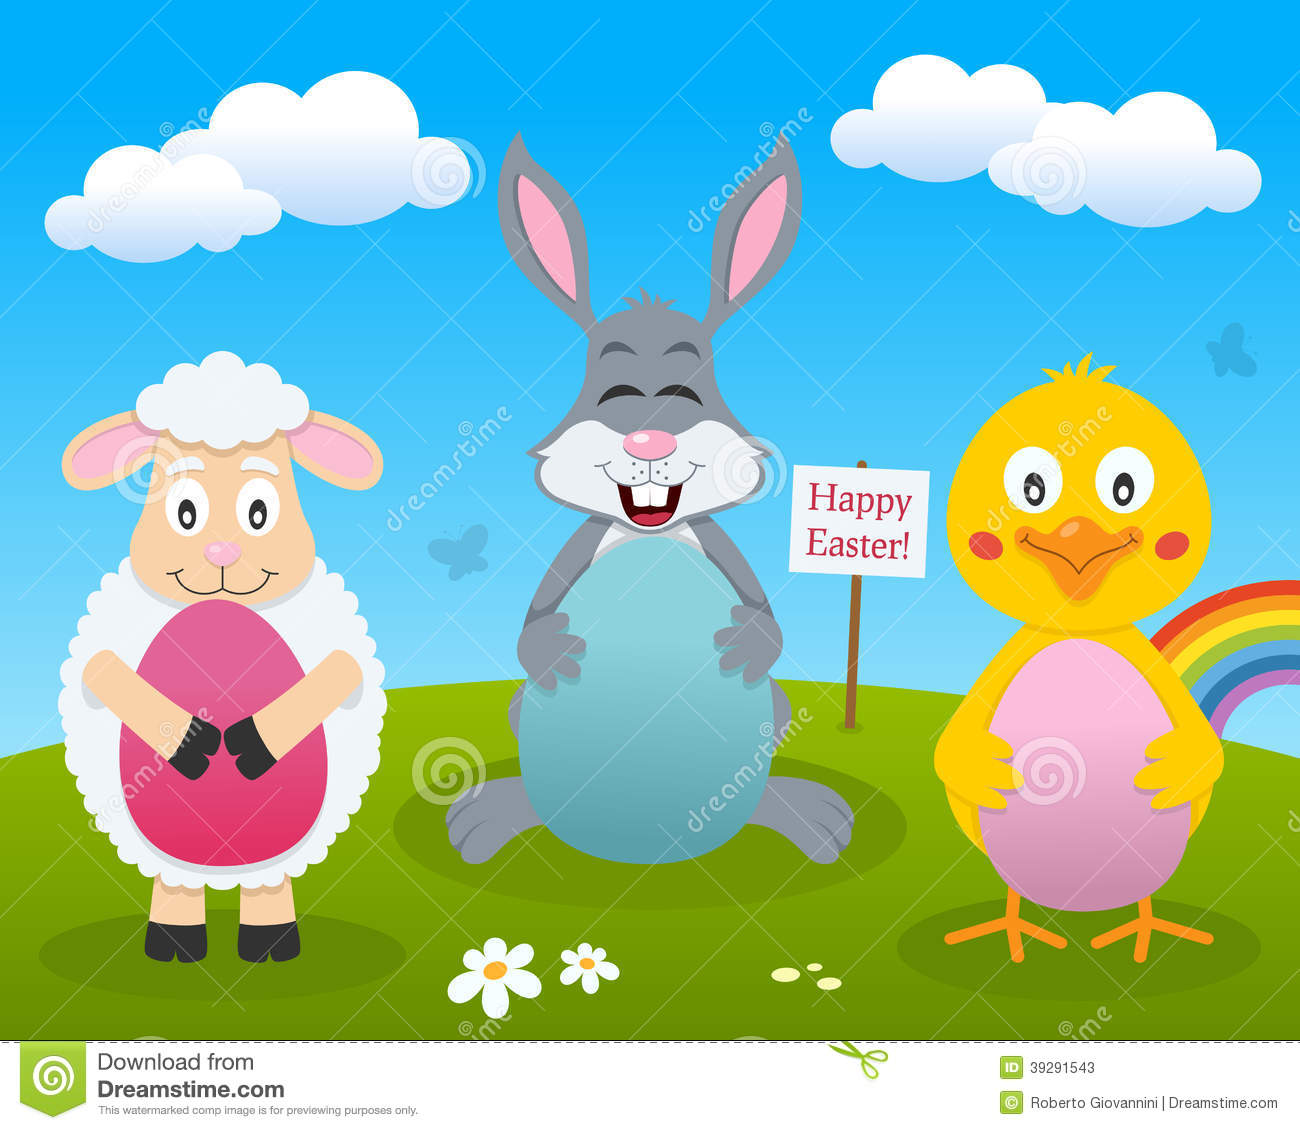 Rabbit, Chick & Lamb With Easter Eggs Stock Vector - Image: 39291543